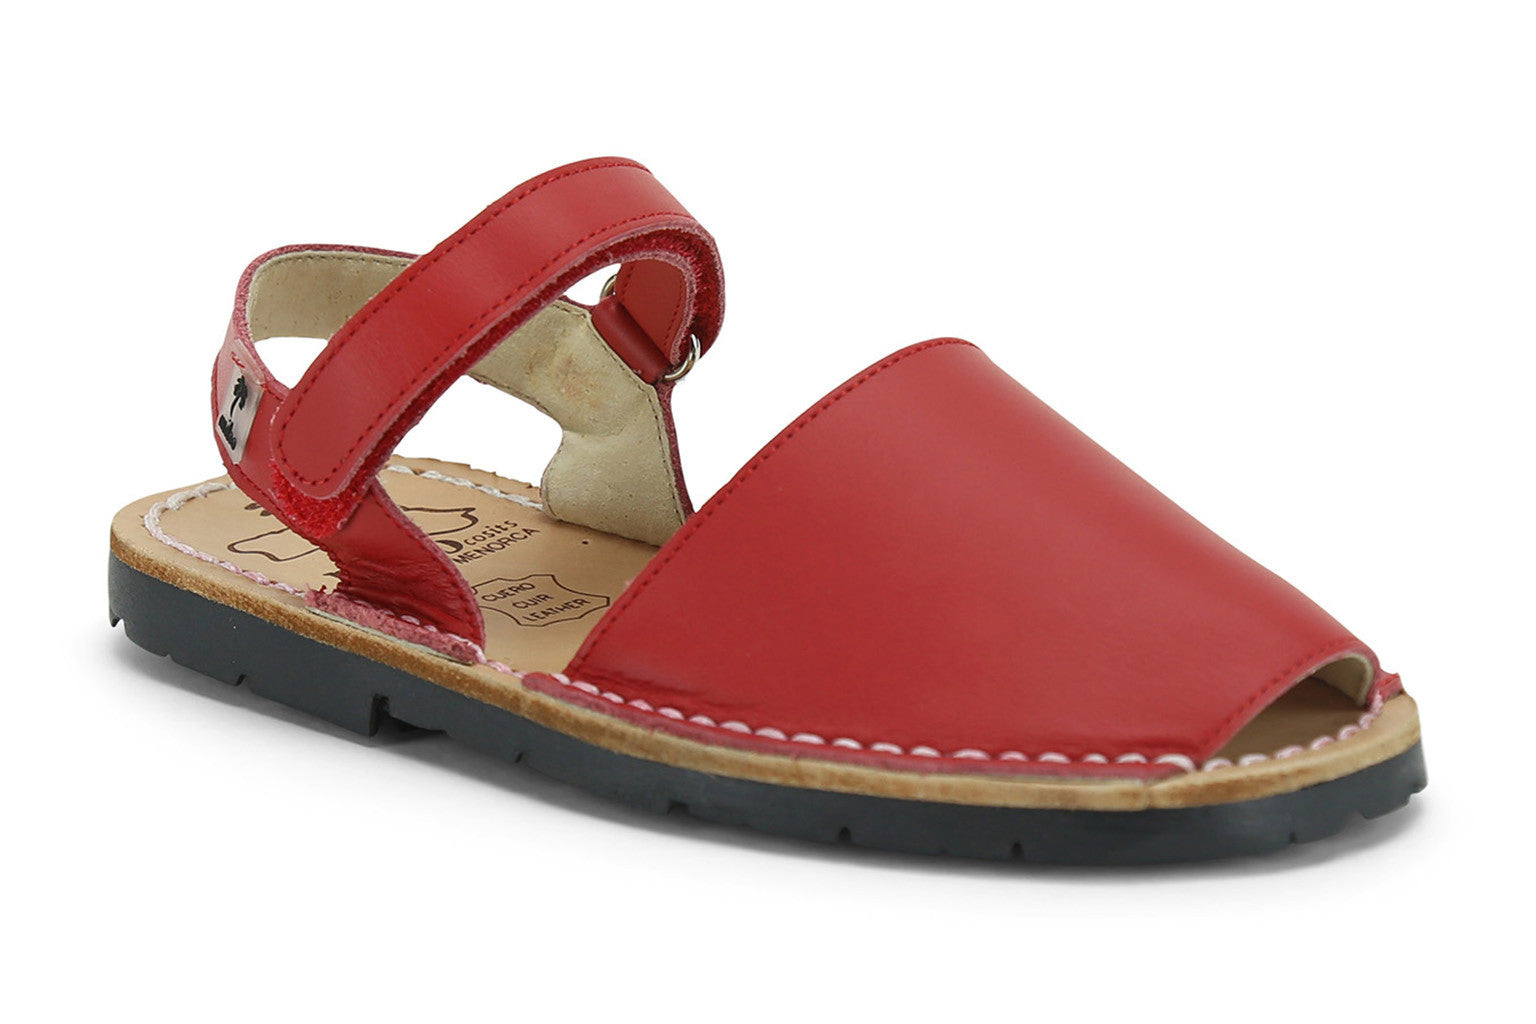 0195cb4ad Mibo Avarcas Kids Hook and Loop Red Leather Slingback Sandals - THE ...